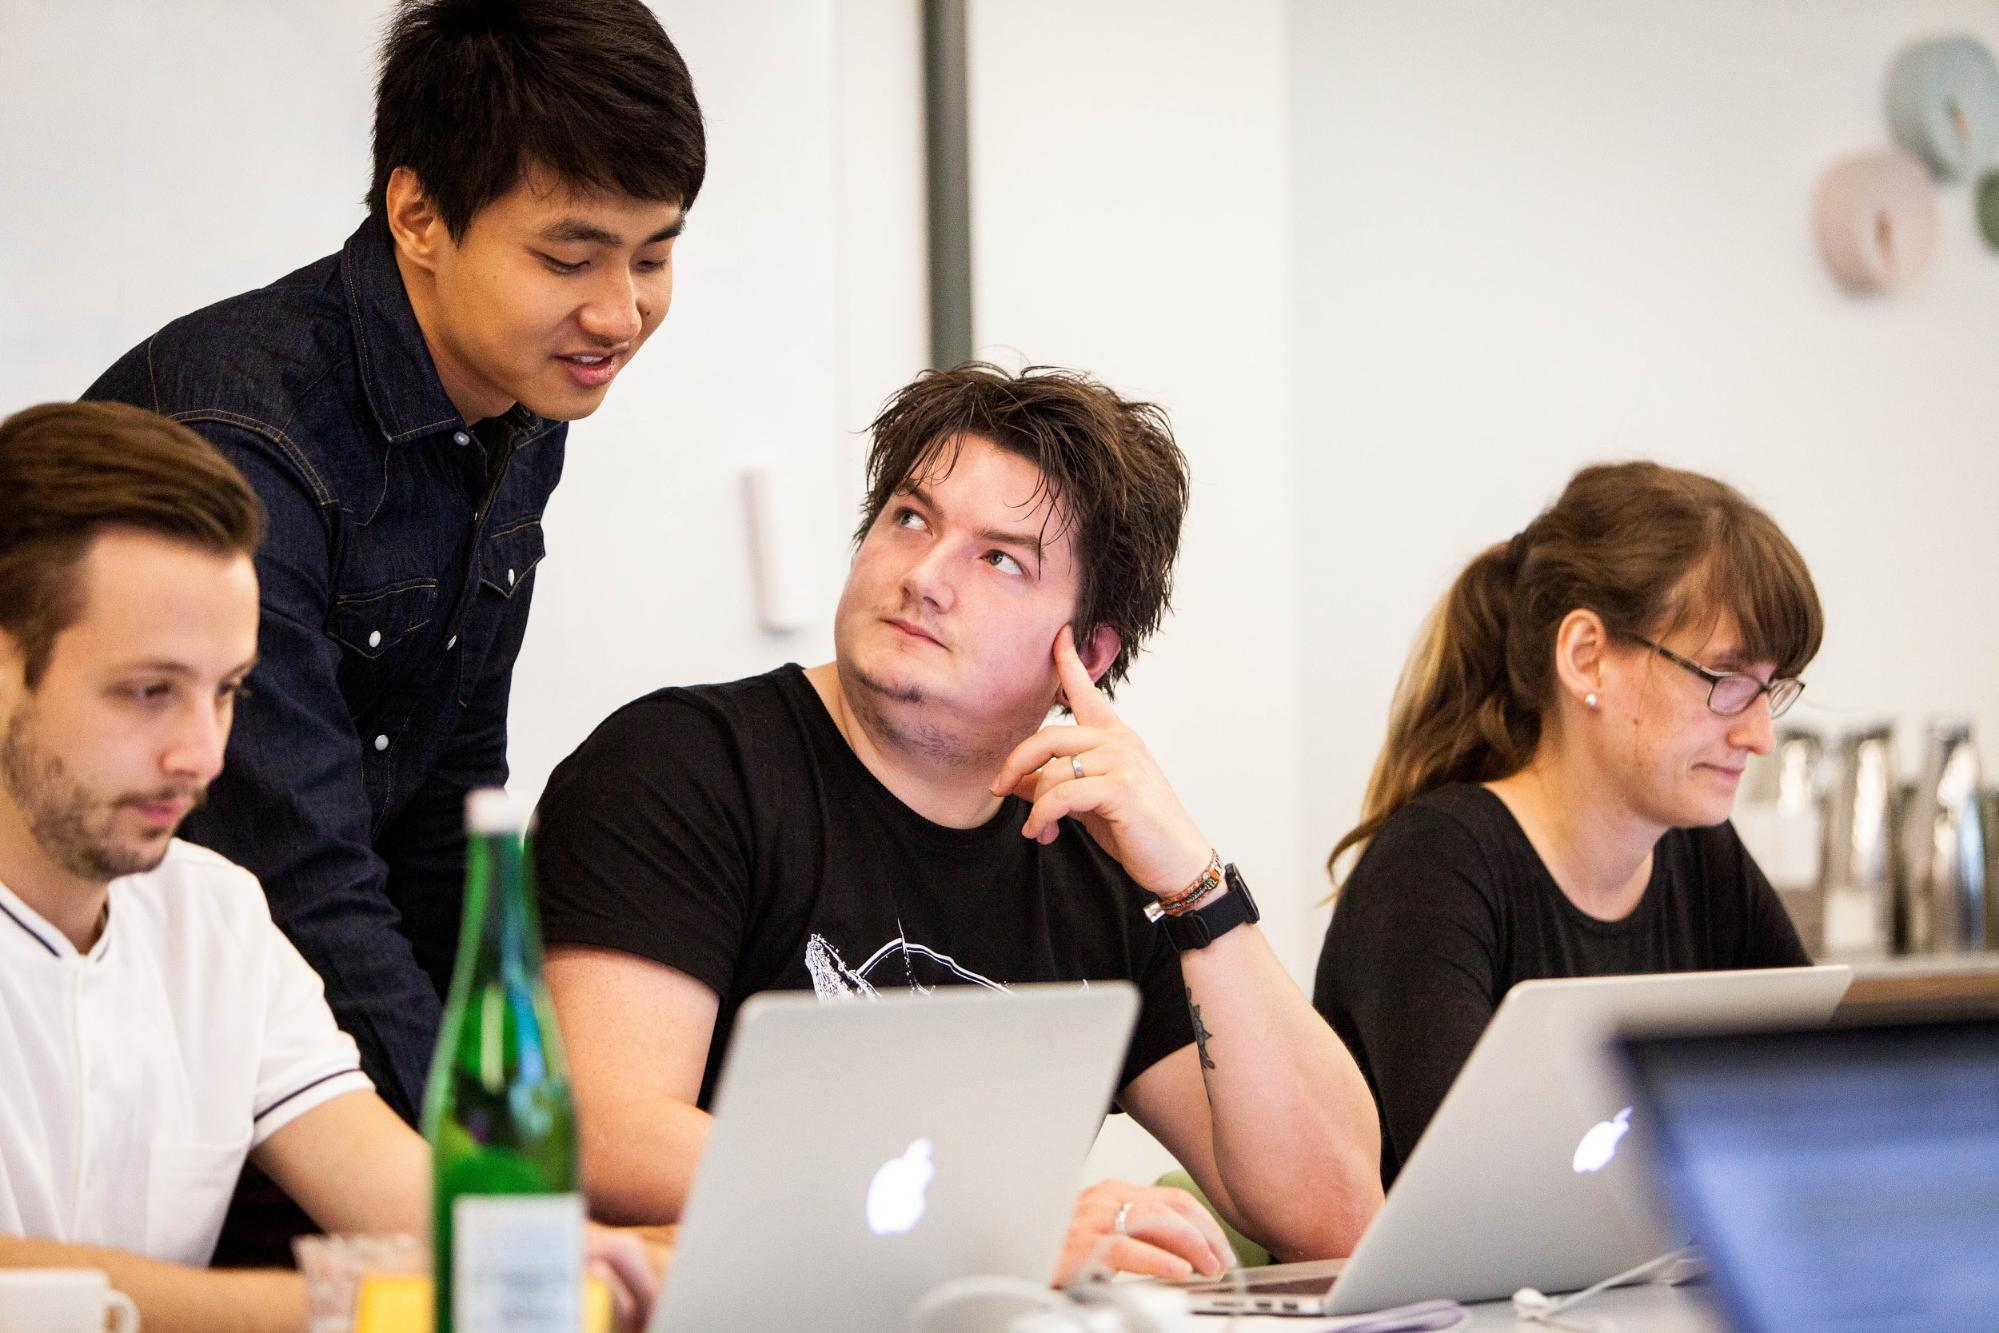 Top web dev shares what he's learnt from being self-taught